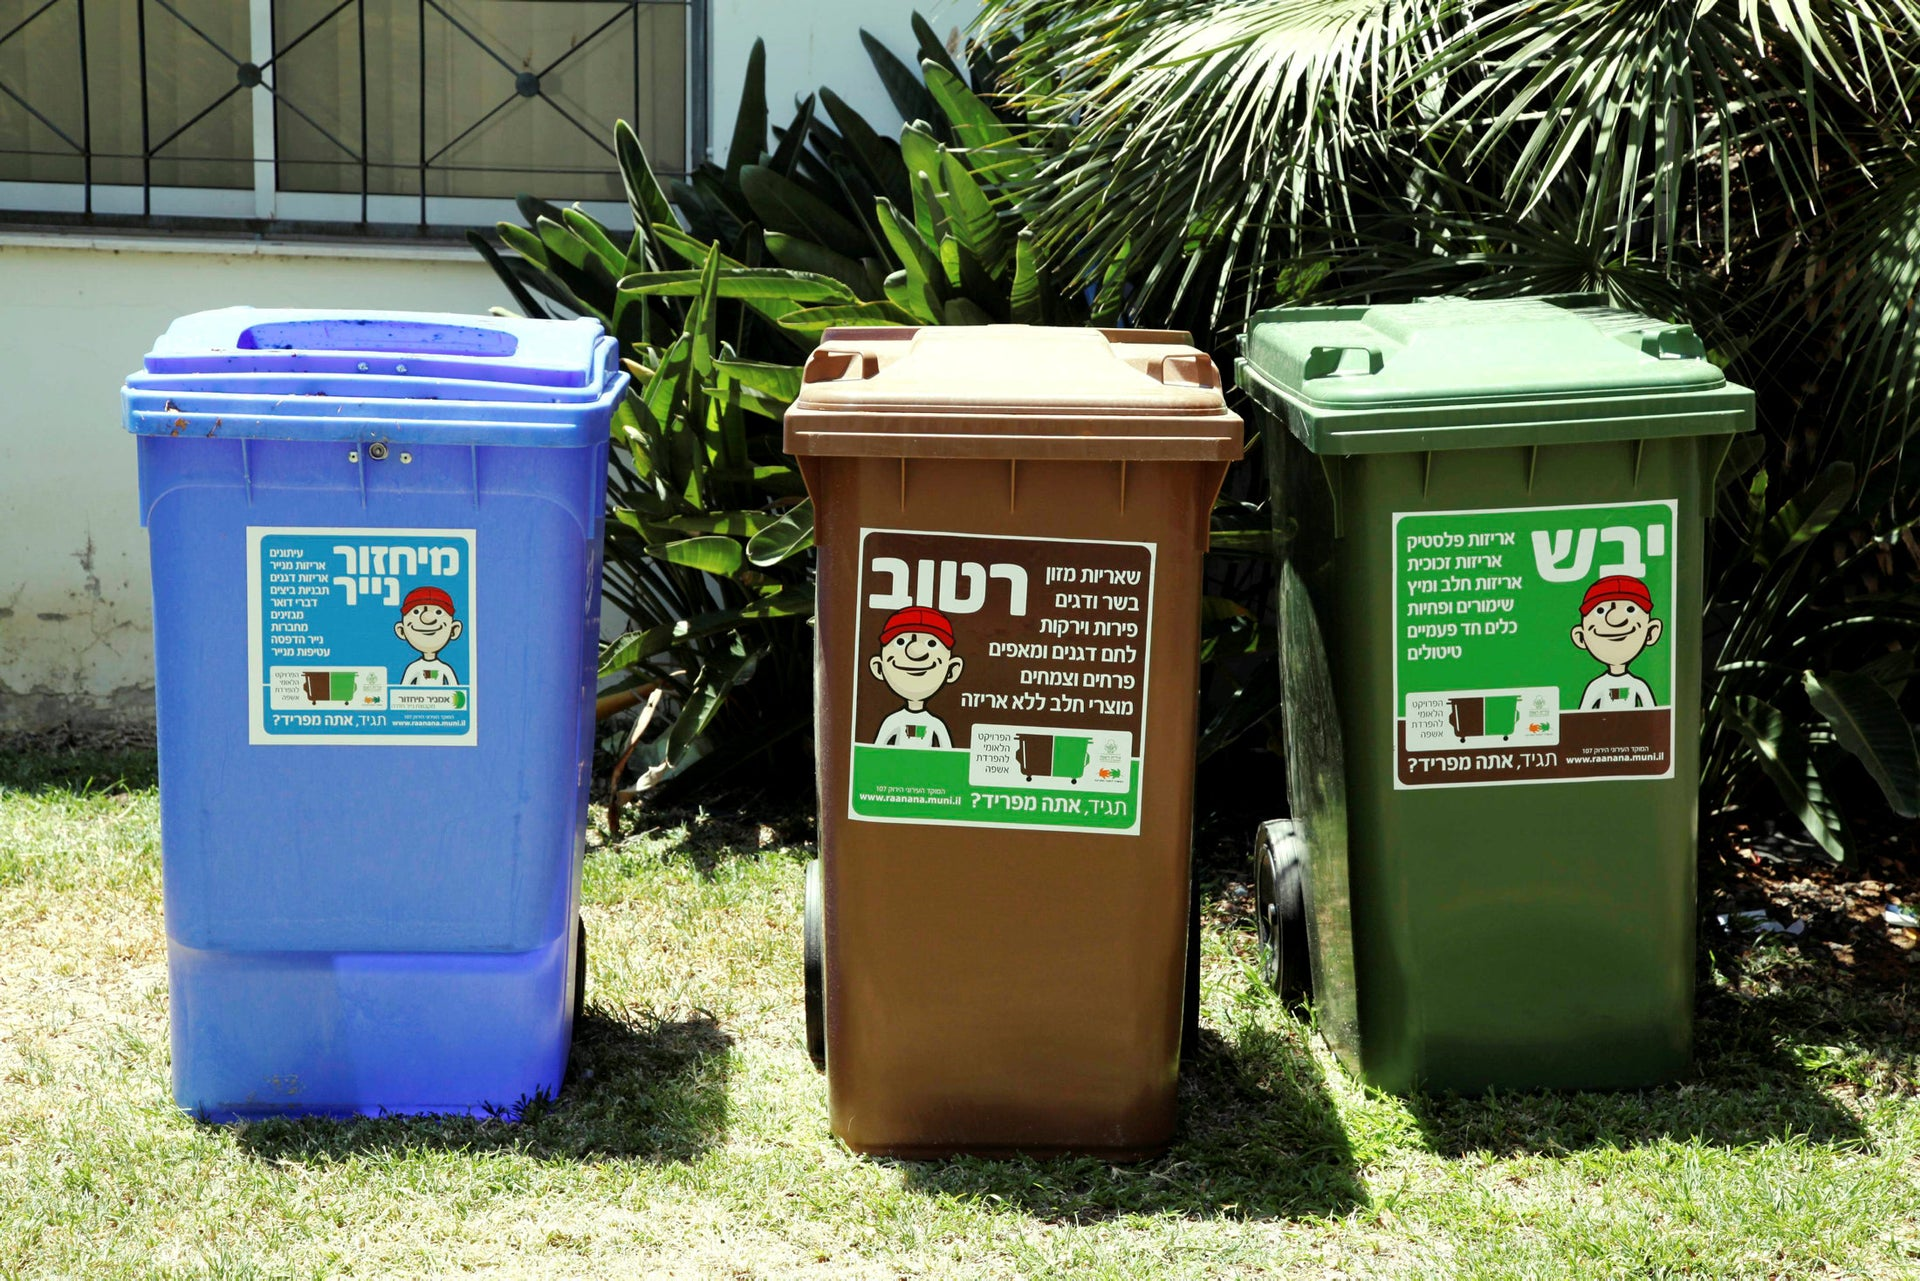 Recycling bins in Ra'anana: The blue bin is for paper, the brown bin for wet waste and the green one for dry waste such as wood, metals and glass.